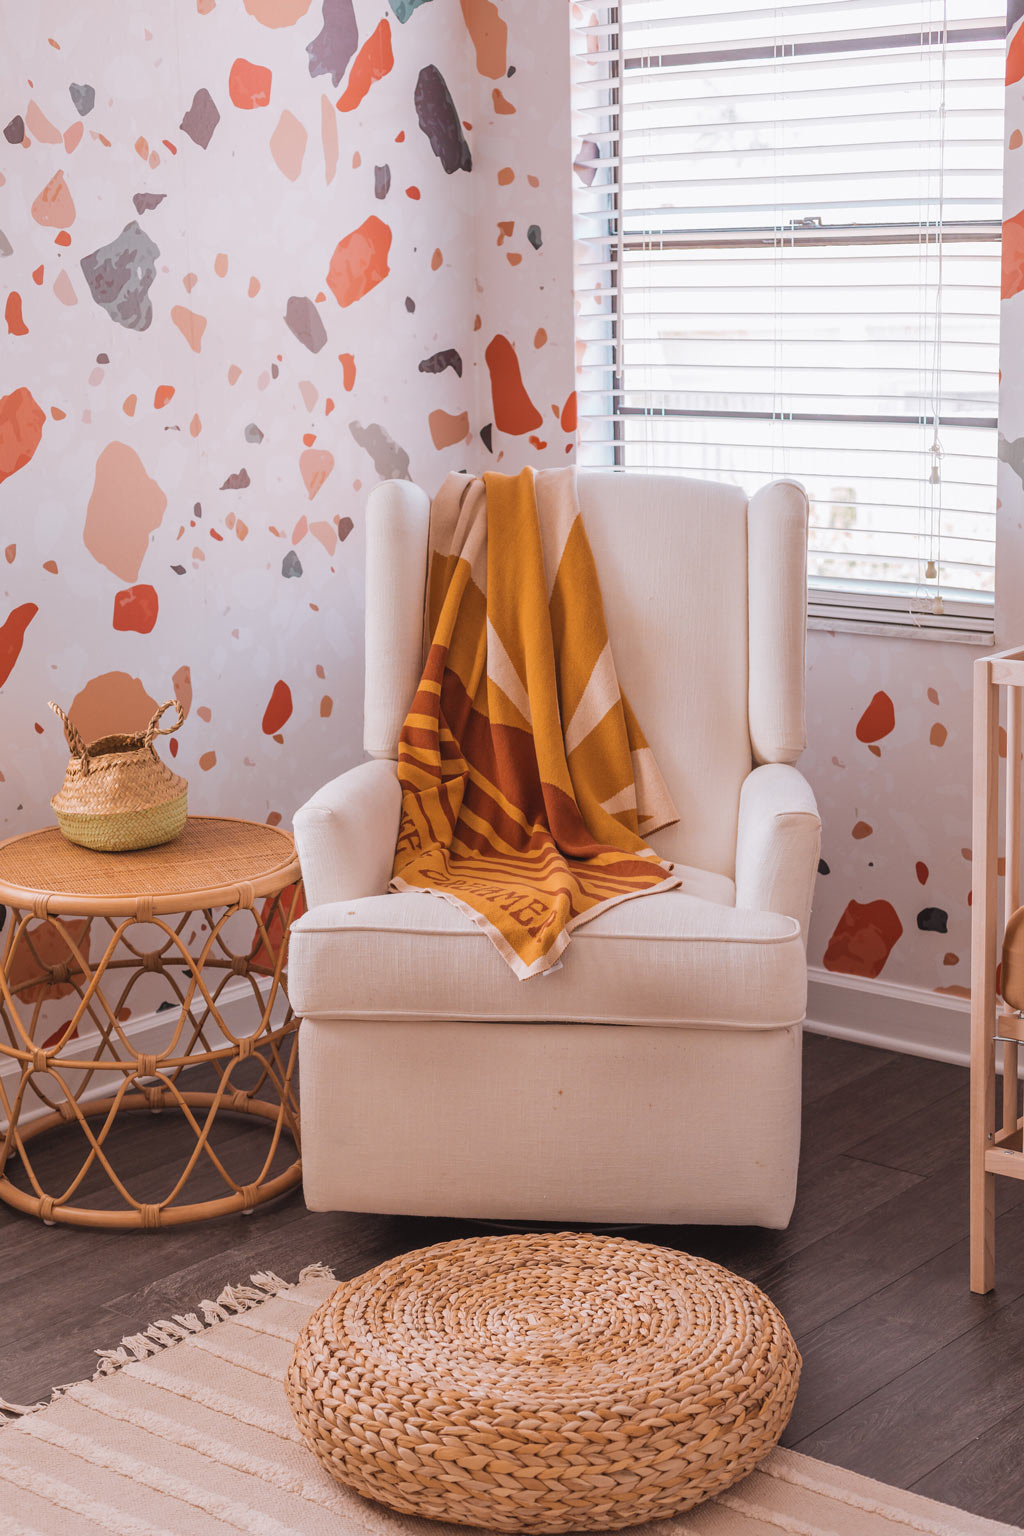 Gender neutral nursery rocking chair corner with terrazzo wallpaper feature wall, warm tone interior decor and woven basket organisation